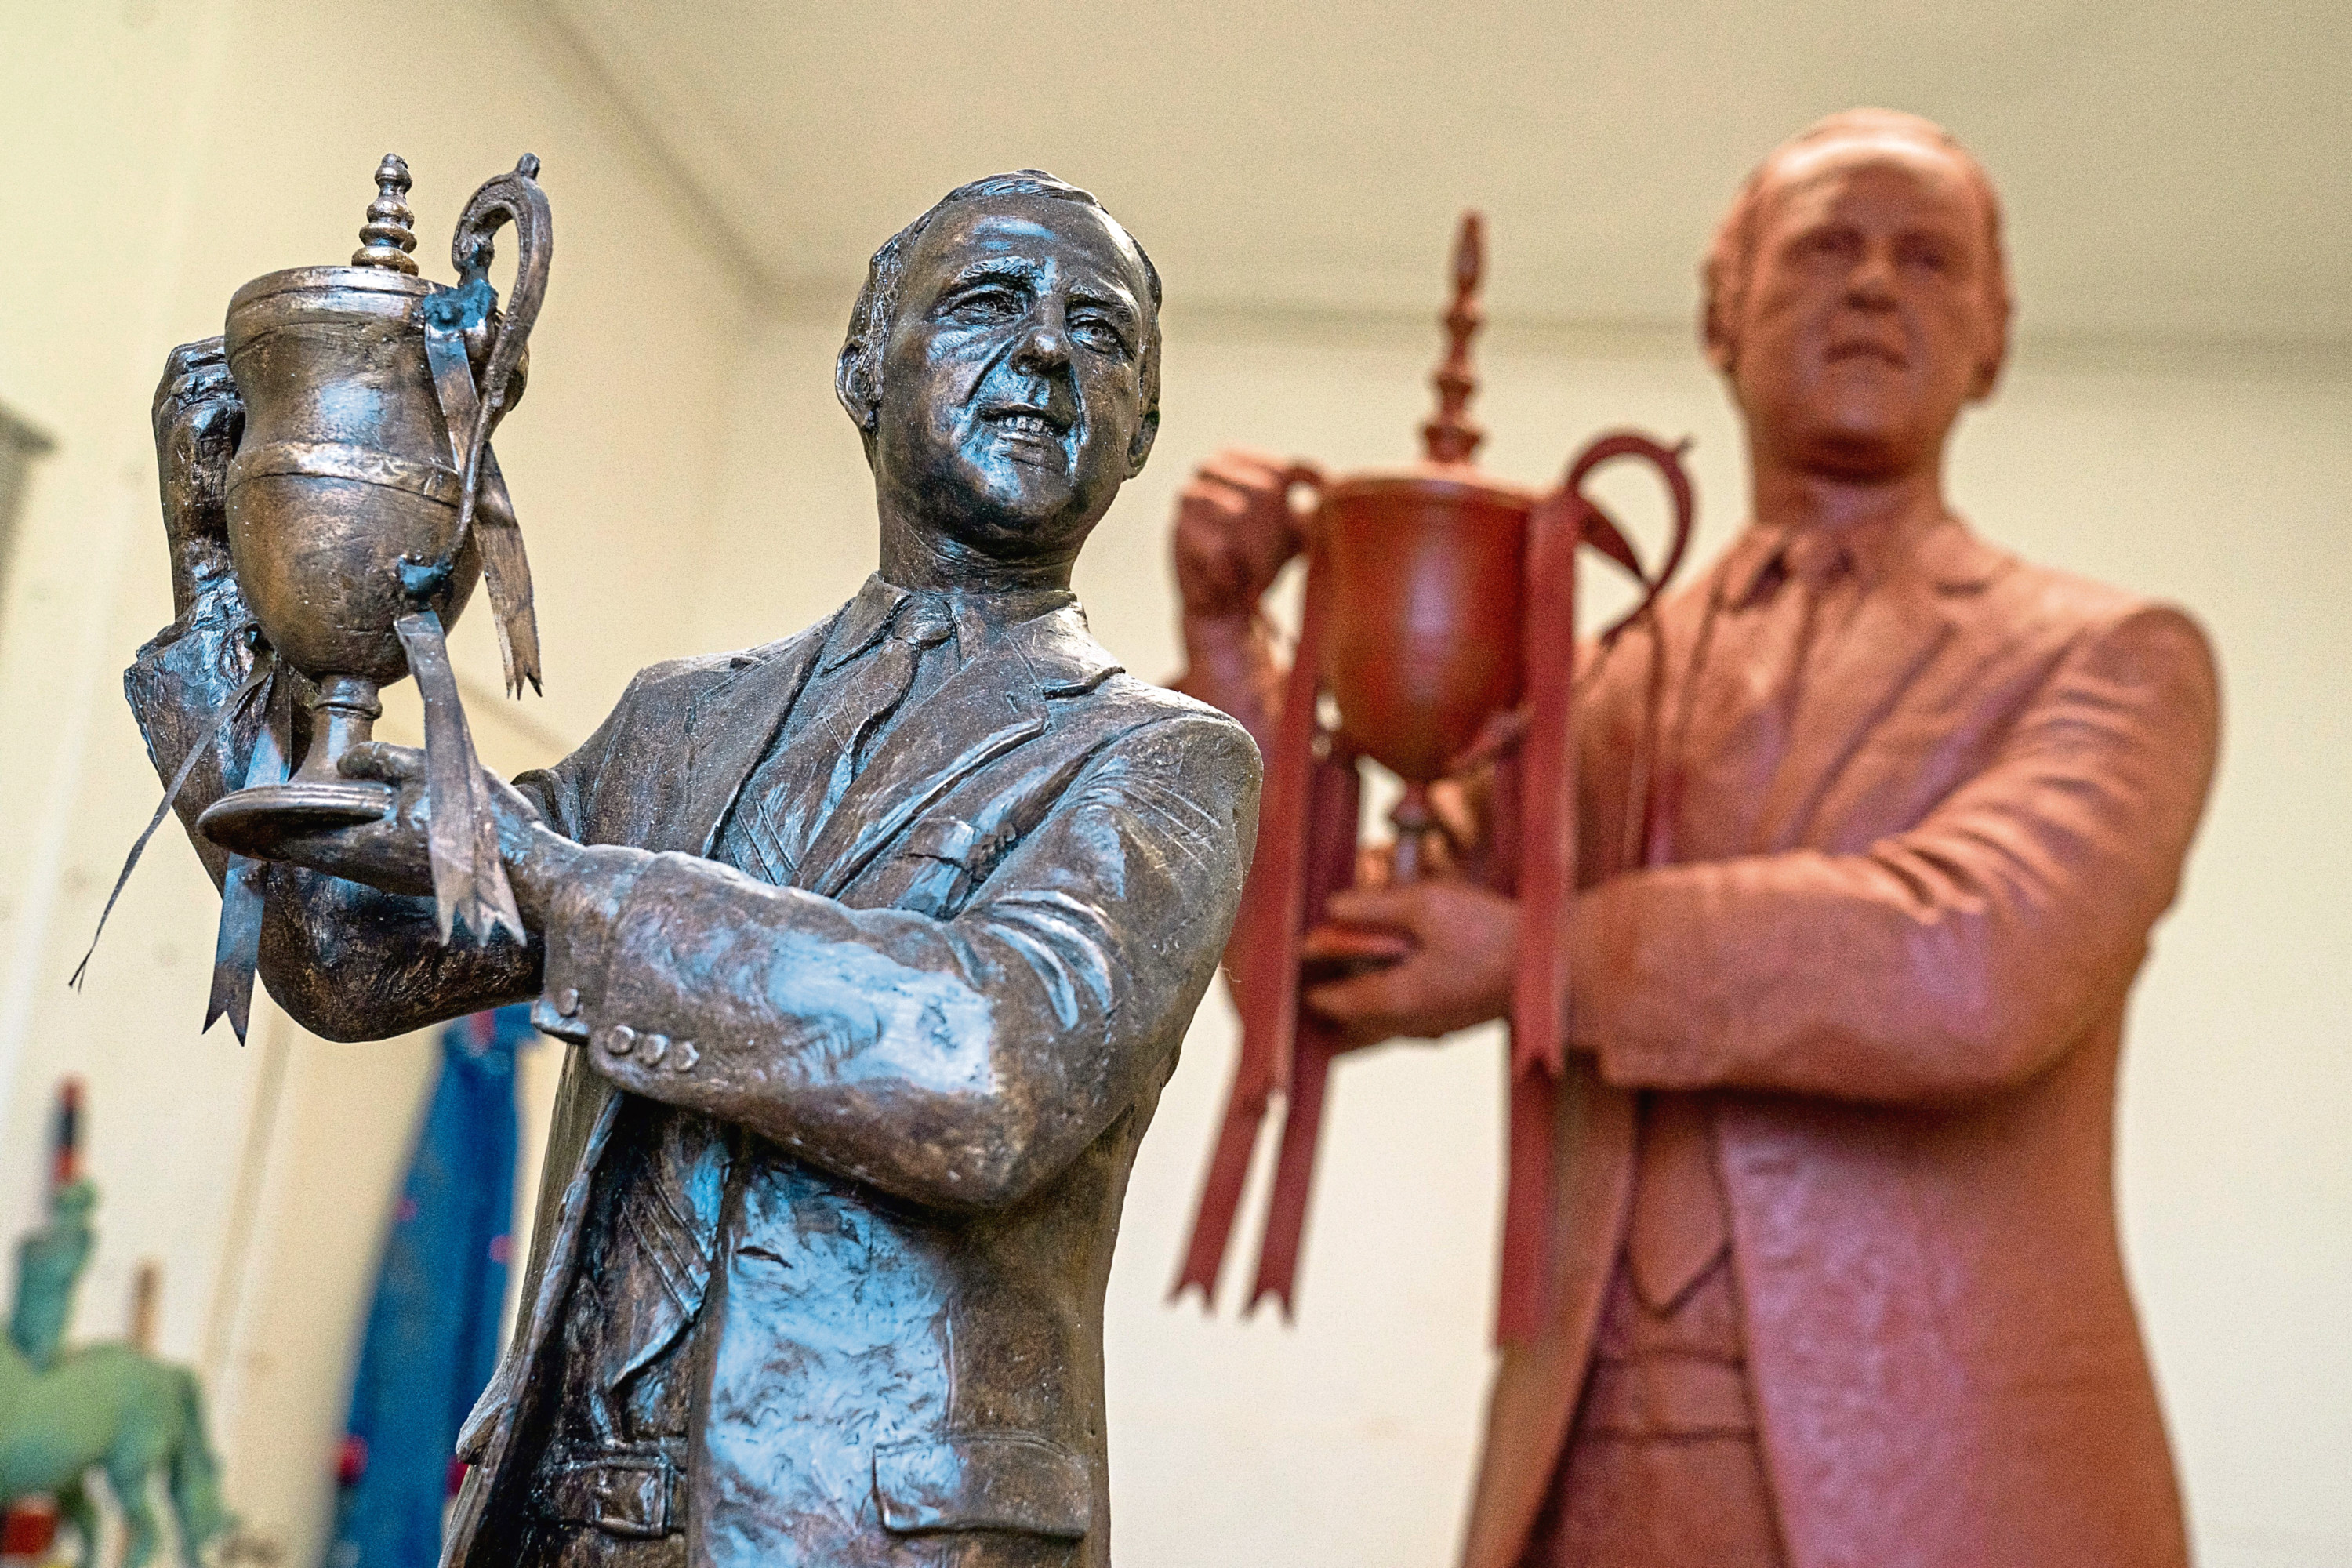 A completed maquette of the statue of Dundee Utd Legend Jim McLean stands in front of the statue which is ready now to be bronzed. Artist Alan Herriot has been commissioned to create the Statue which will take pride of place outside Tannadice once complete. CR0018645 Pic Kenny Smith, Kenny Smith Photography Tel 07809 450119